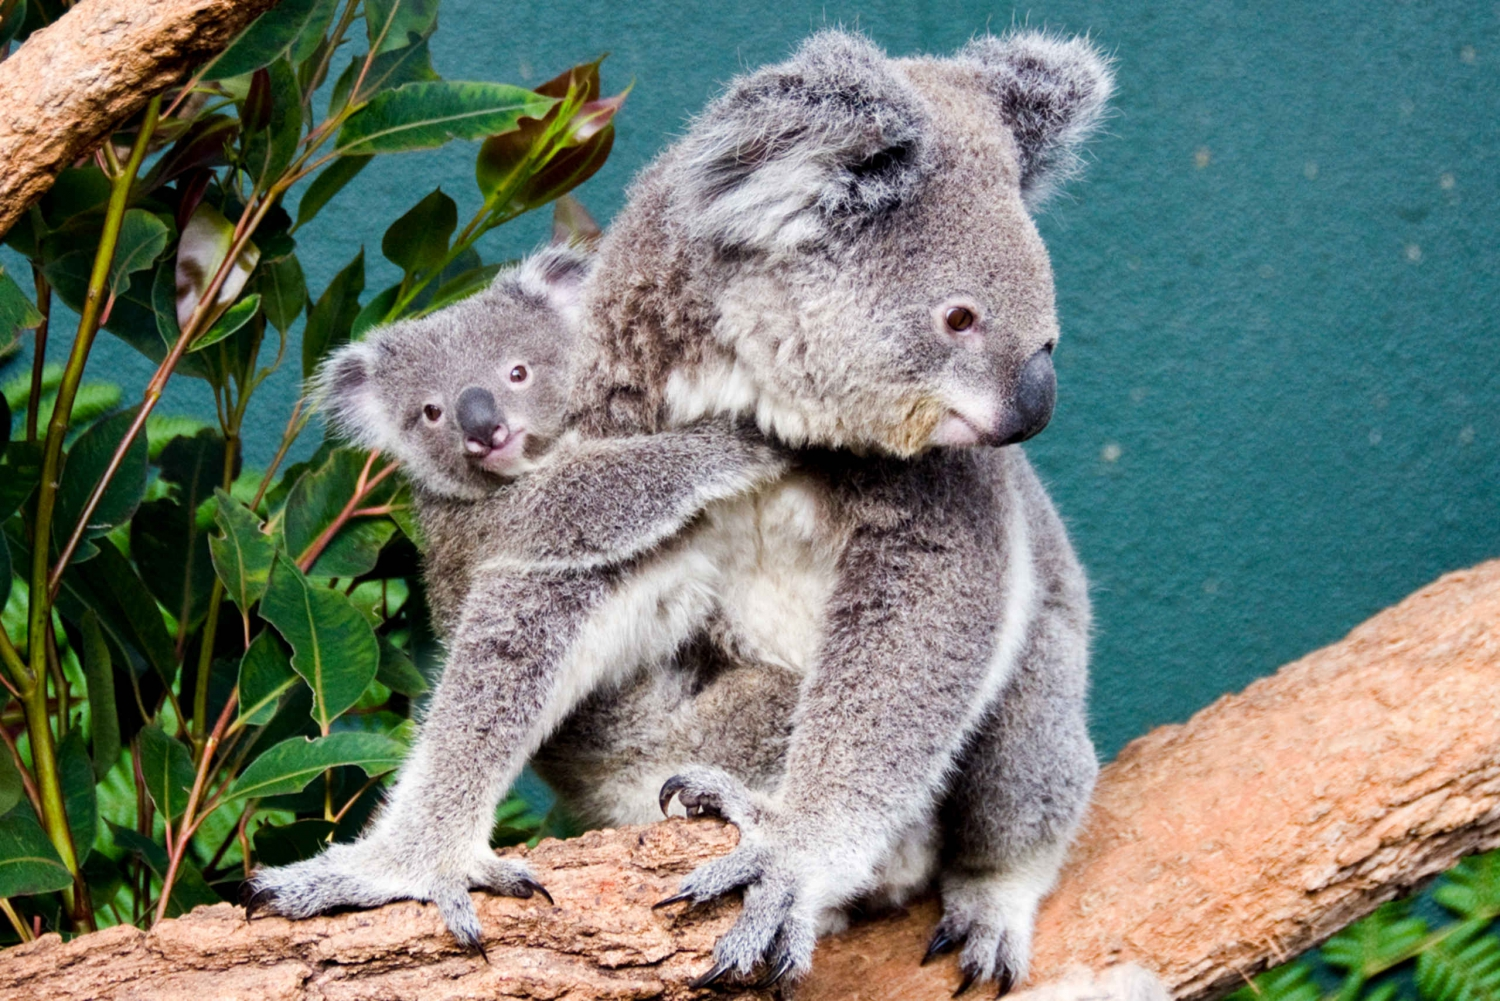 Breakfast with Koalas at WILD LIFE Zoo Darling Harbour